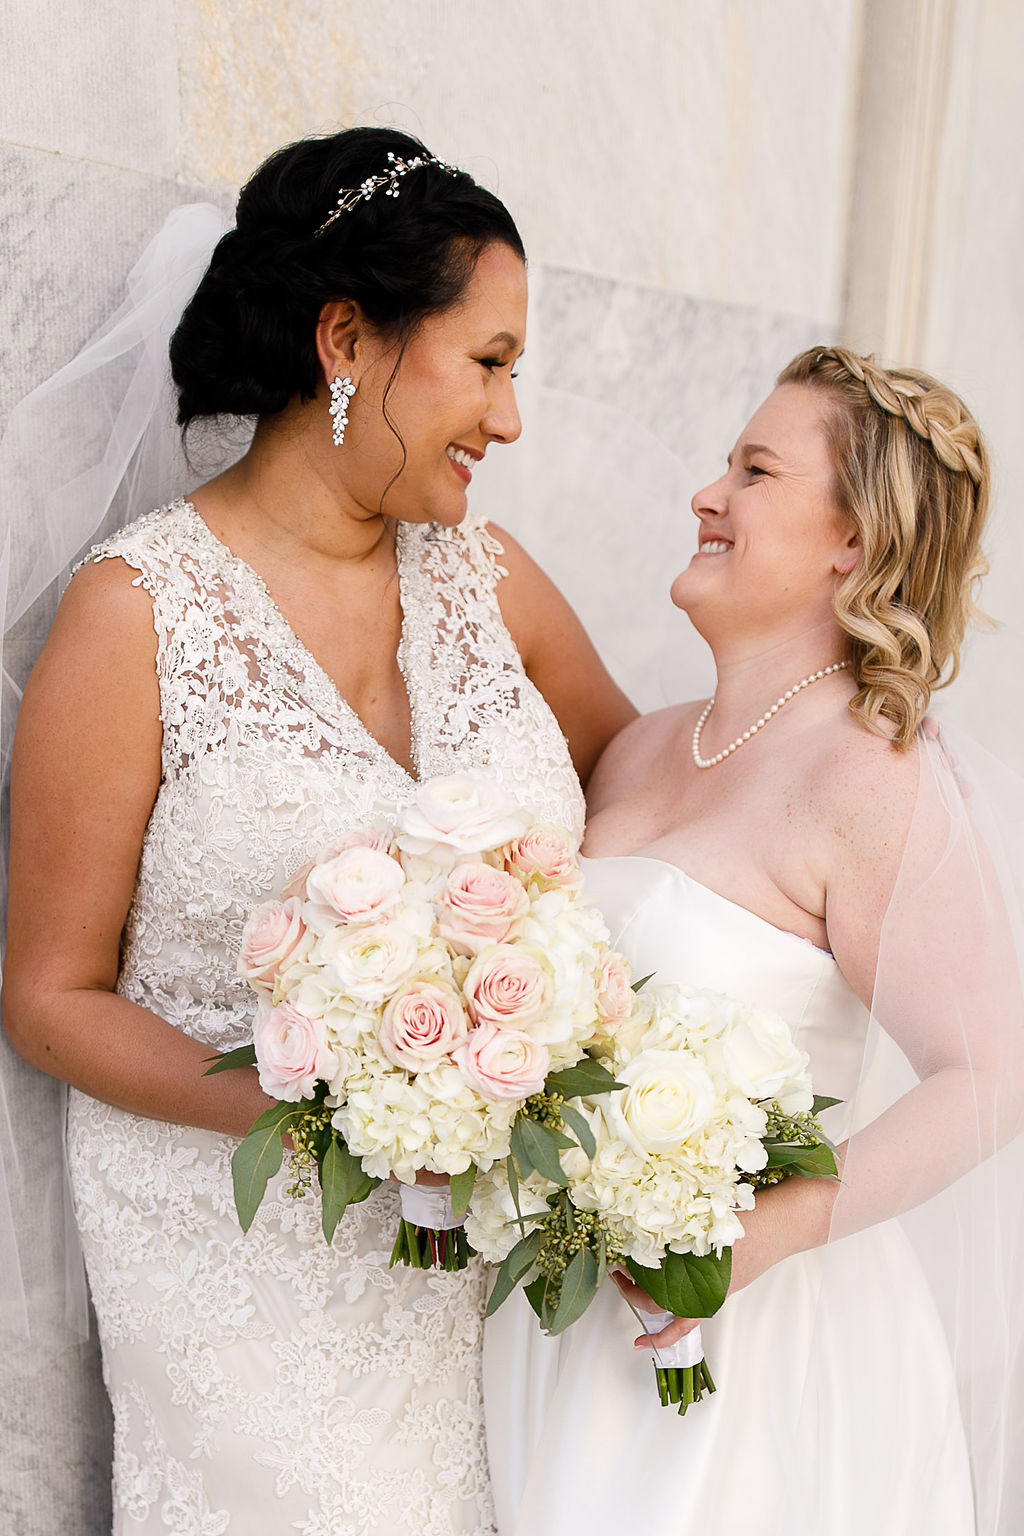 Old City Philly Renaissance Hotel Lesbian Winter Wedding43.jpg